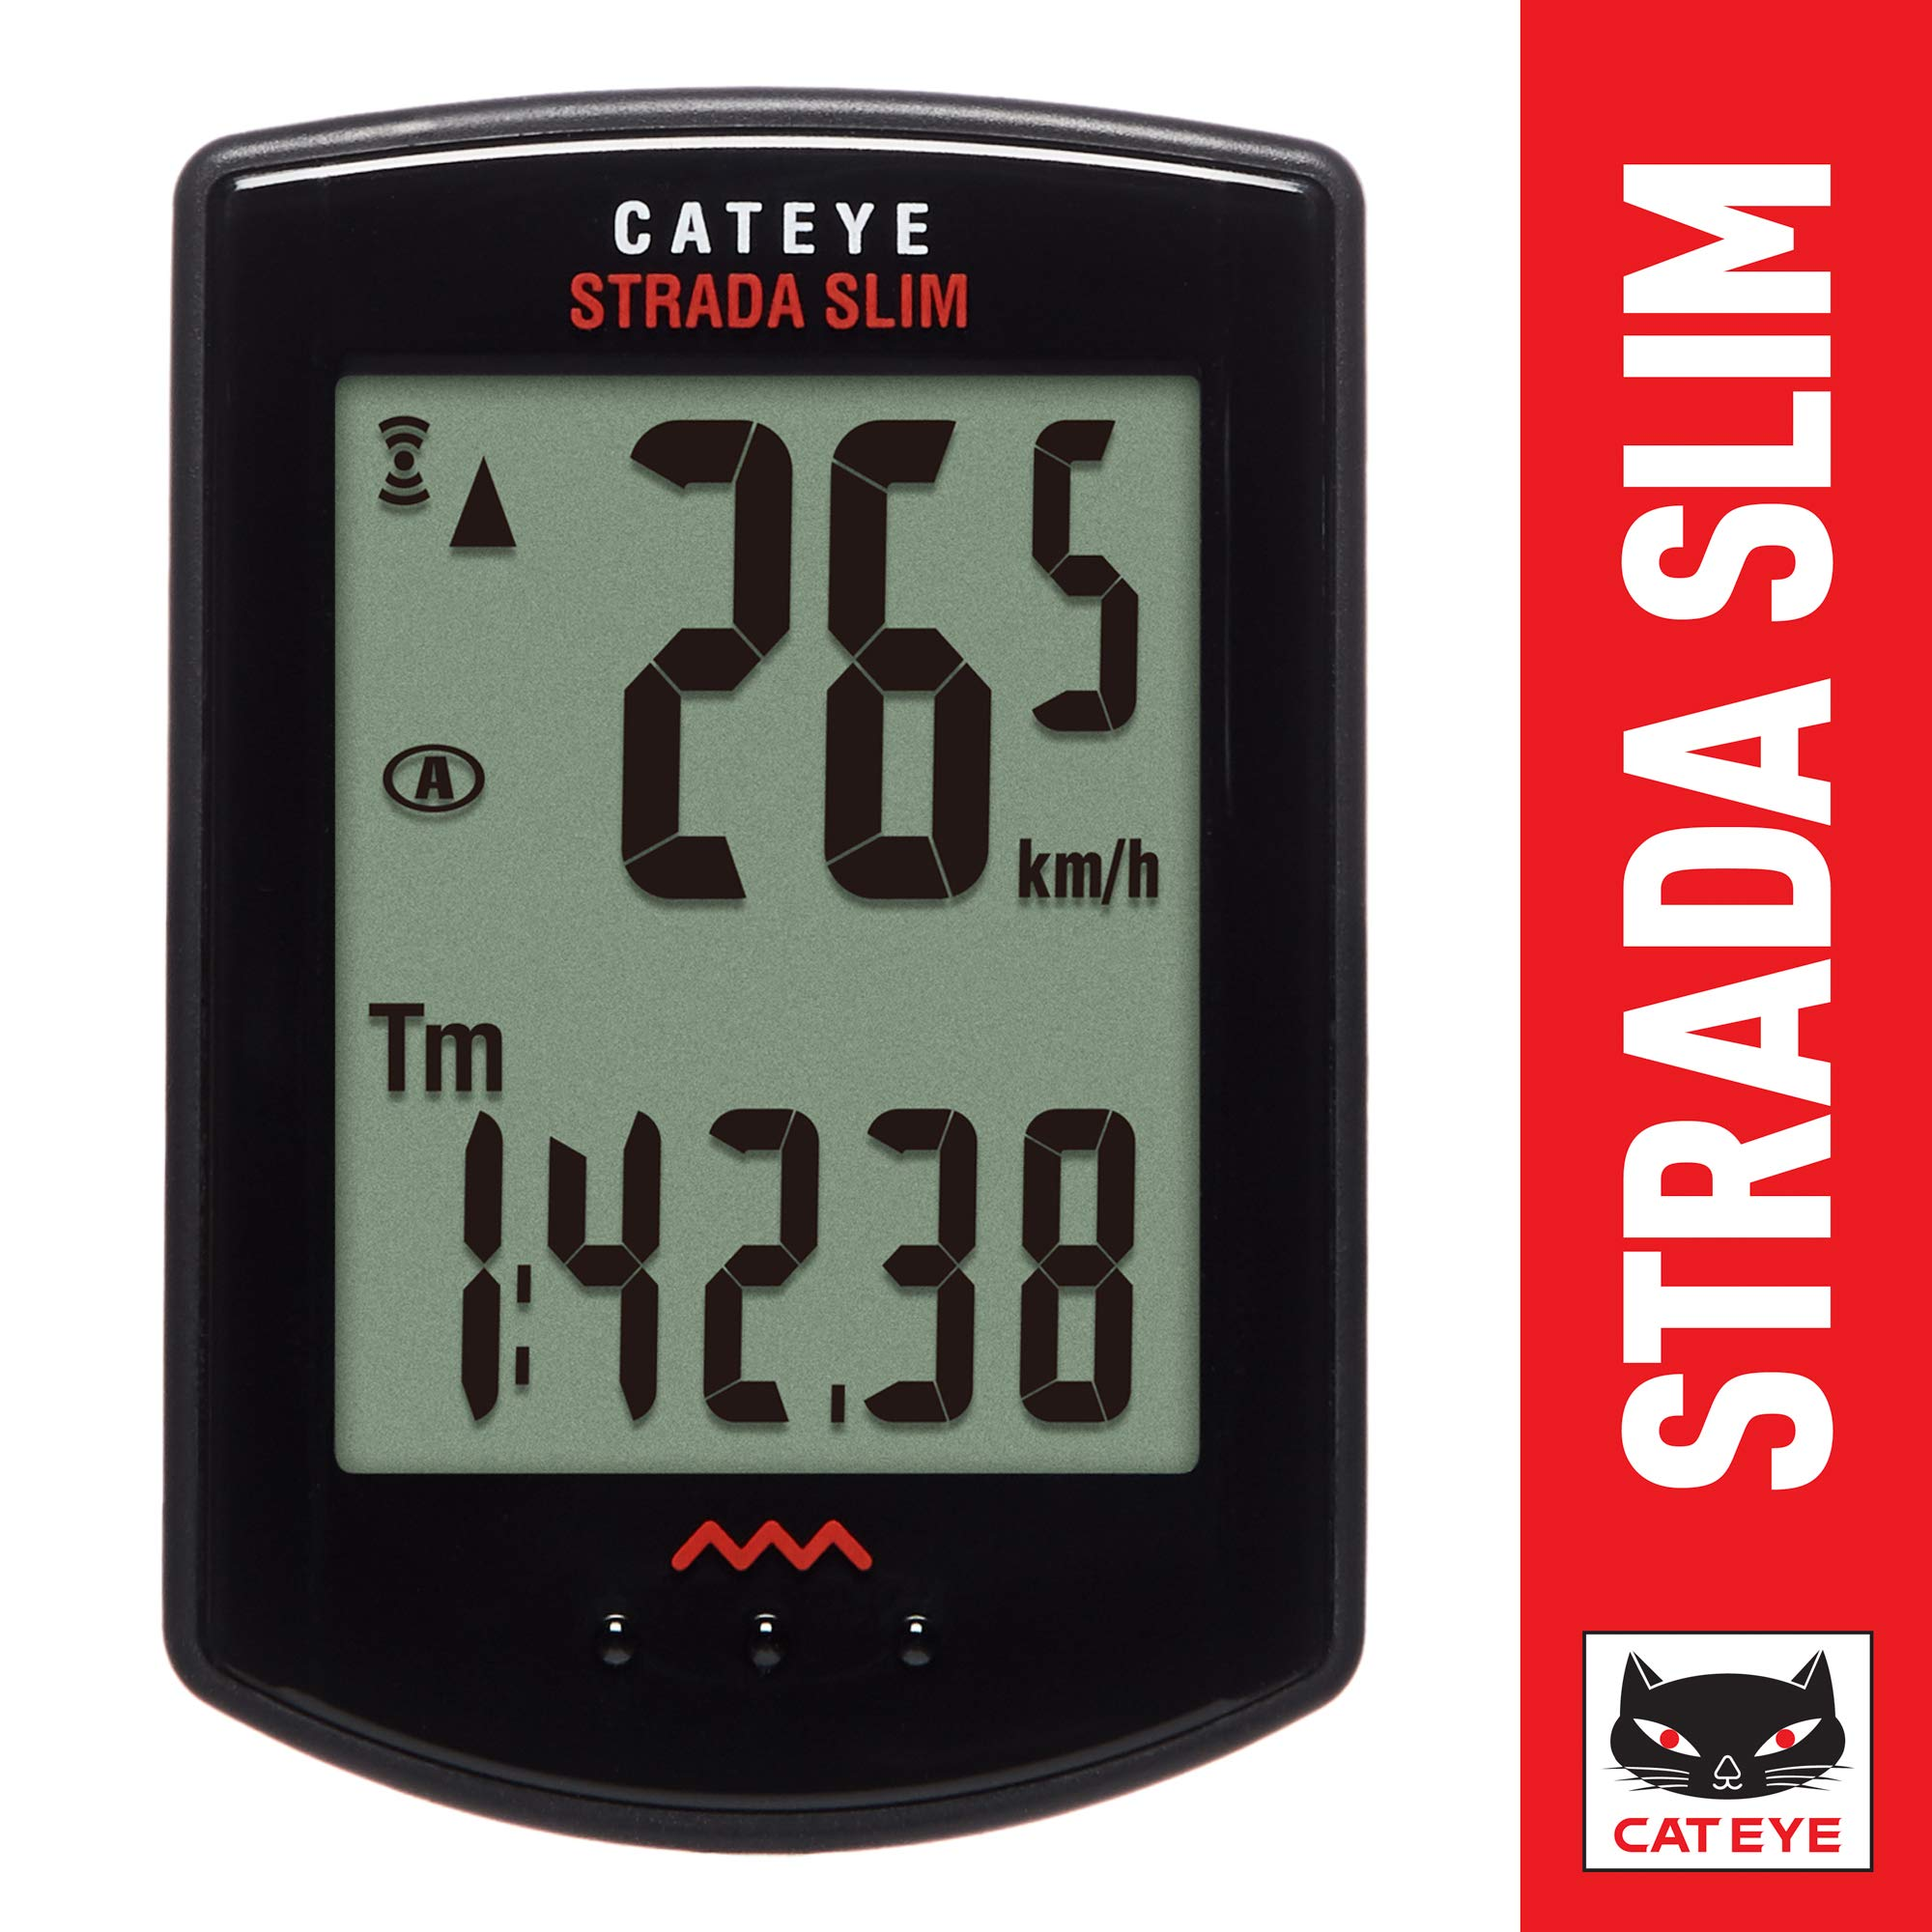 CAT EYE - Strada Slim Wireless Bike Computer, Black by CAT EYE